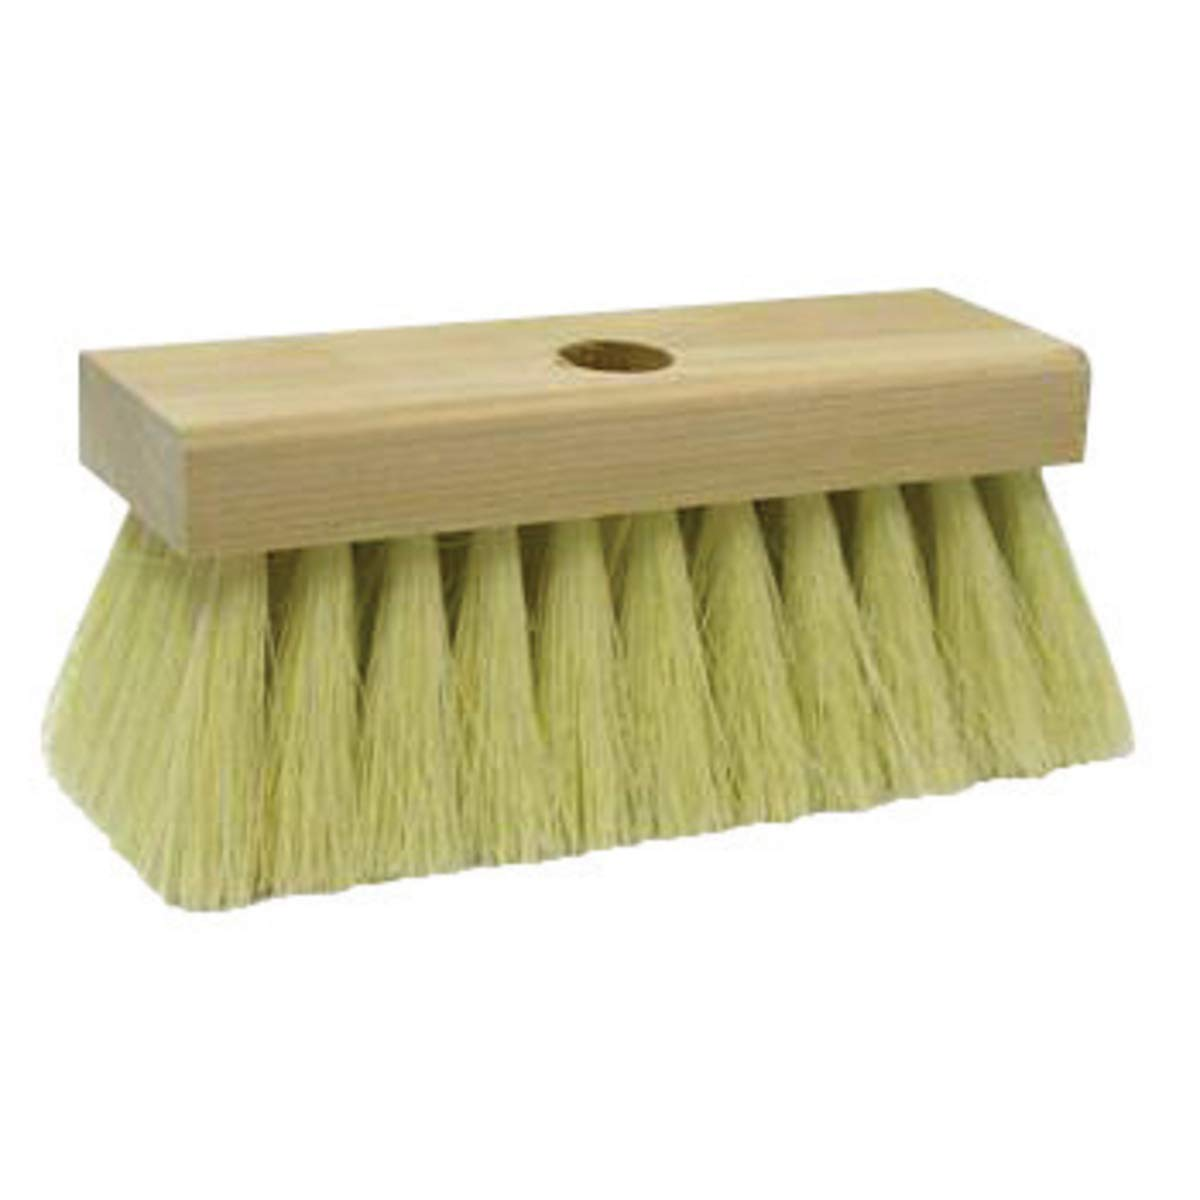 Weiler Block Roof Brush With 7'' Block, Tapered Handle, 2'' White Tampico Trim And 5 Knots, Package Size: 12 Each by Weiler Corp. (Image #1)